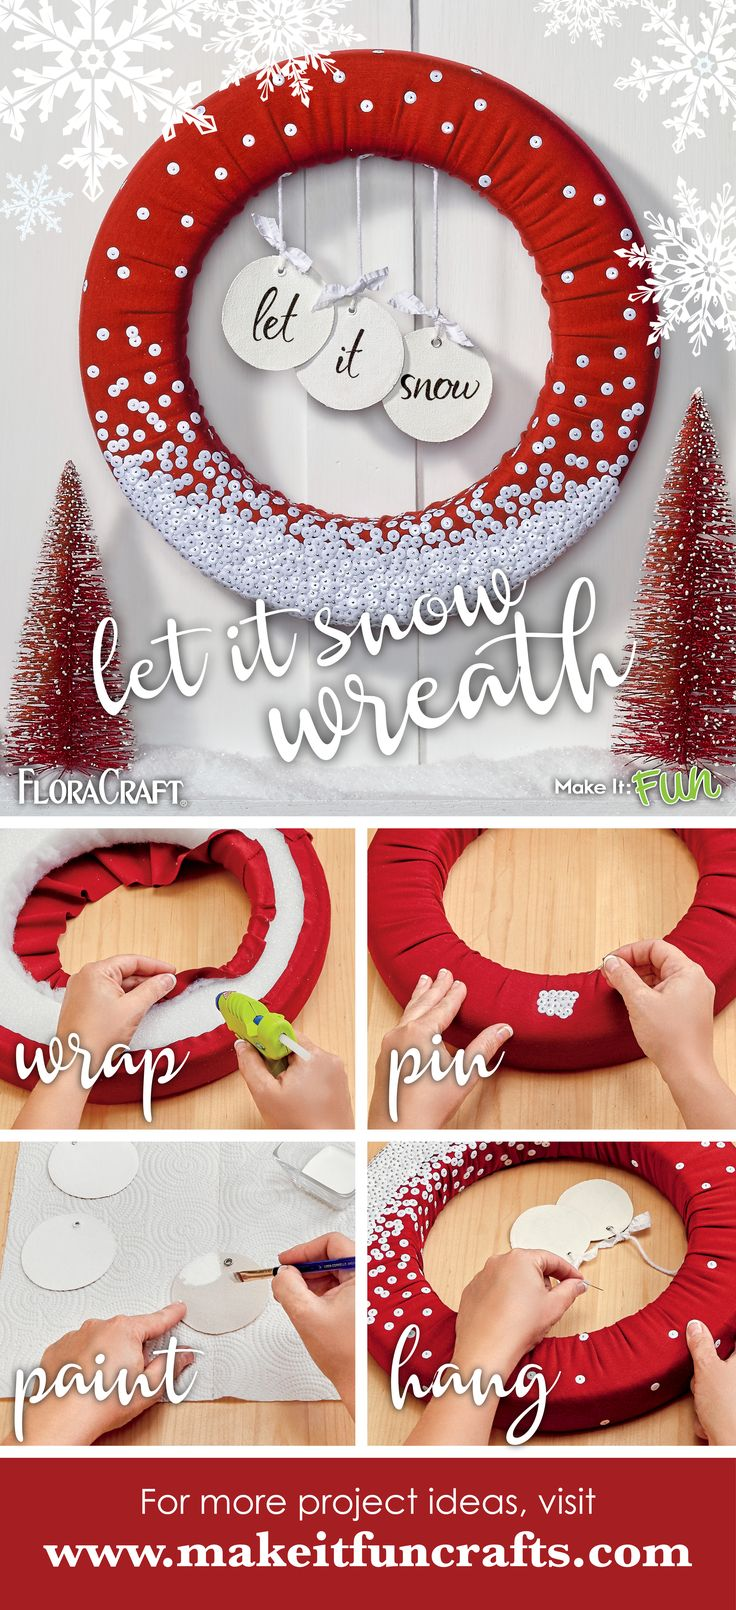 When you've got no place to go...make your own snow globe wreath and let it snow, let it snow, let it snow! #makeitfuncrafts